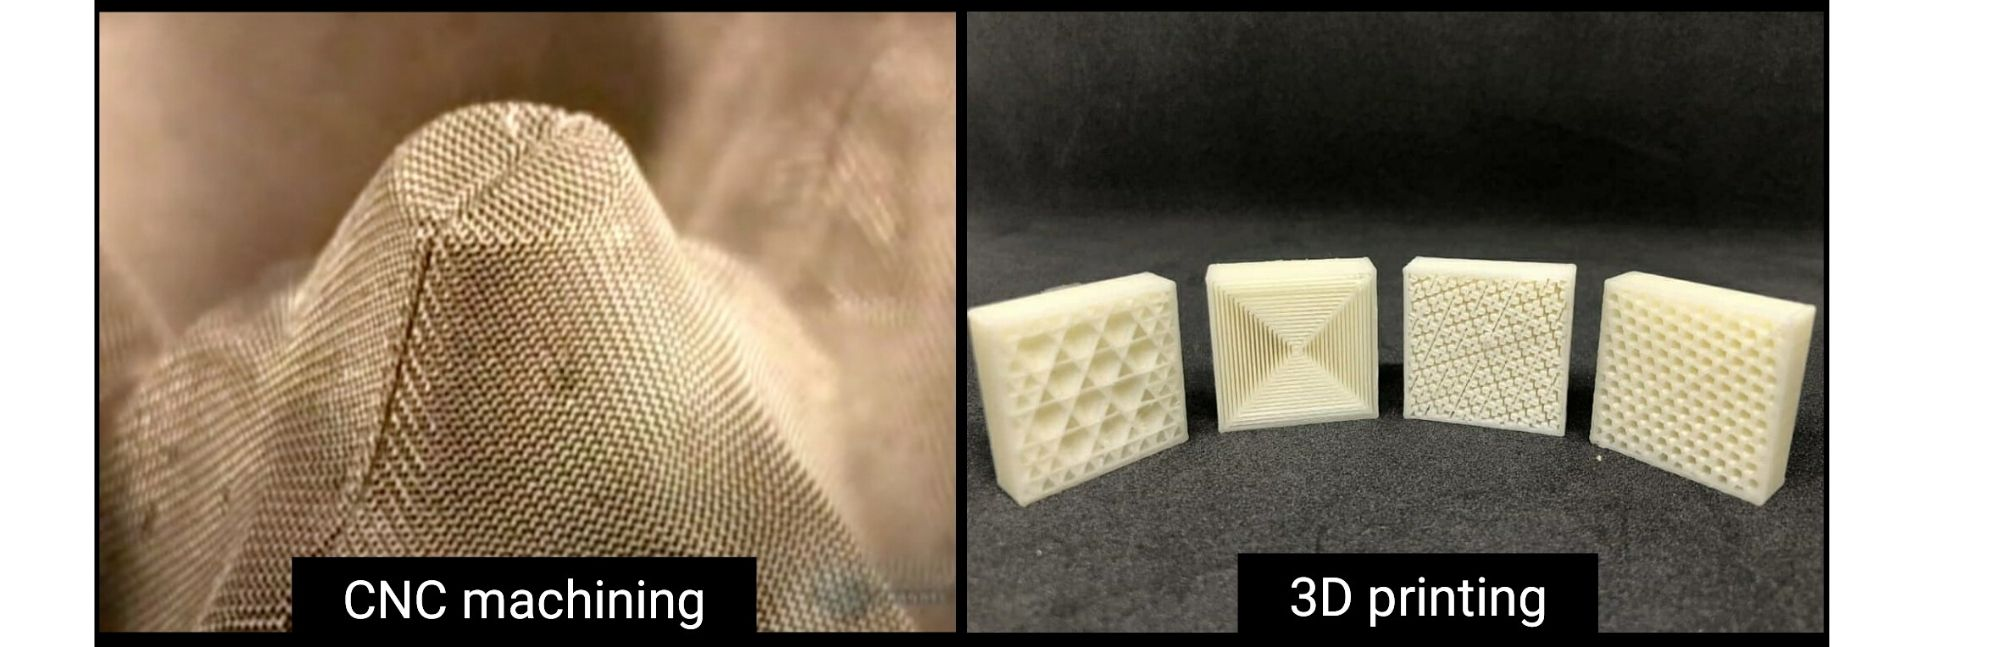 3D Printed component V/s Pulp mould internal structure similarities.